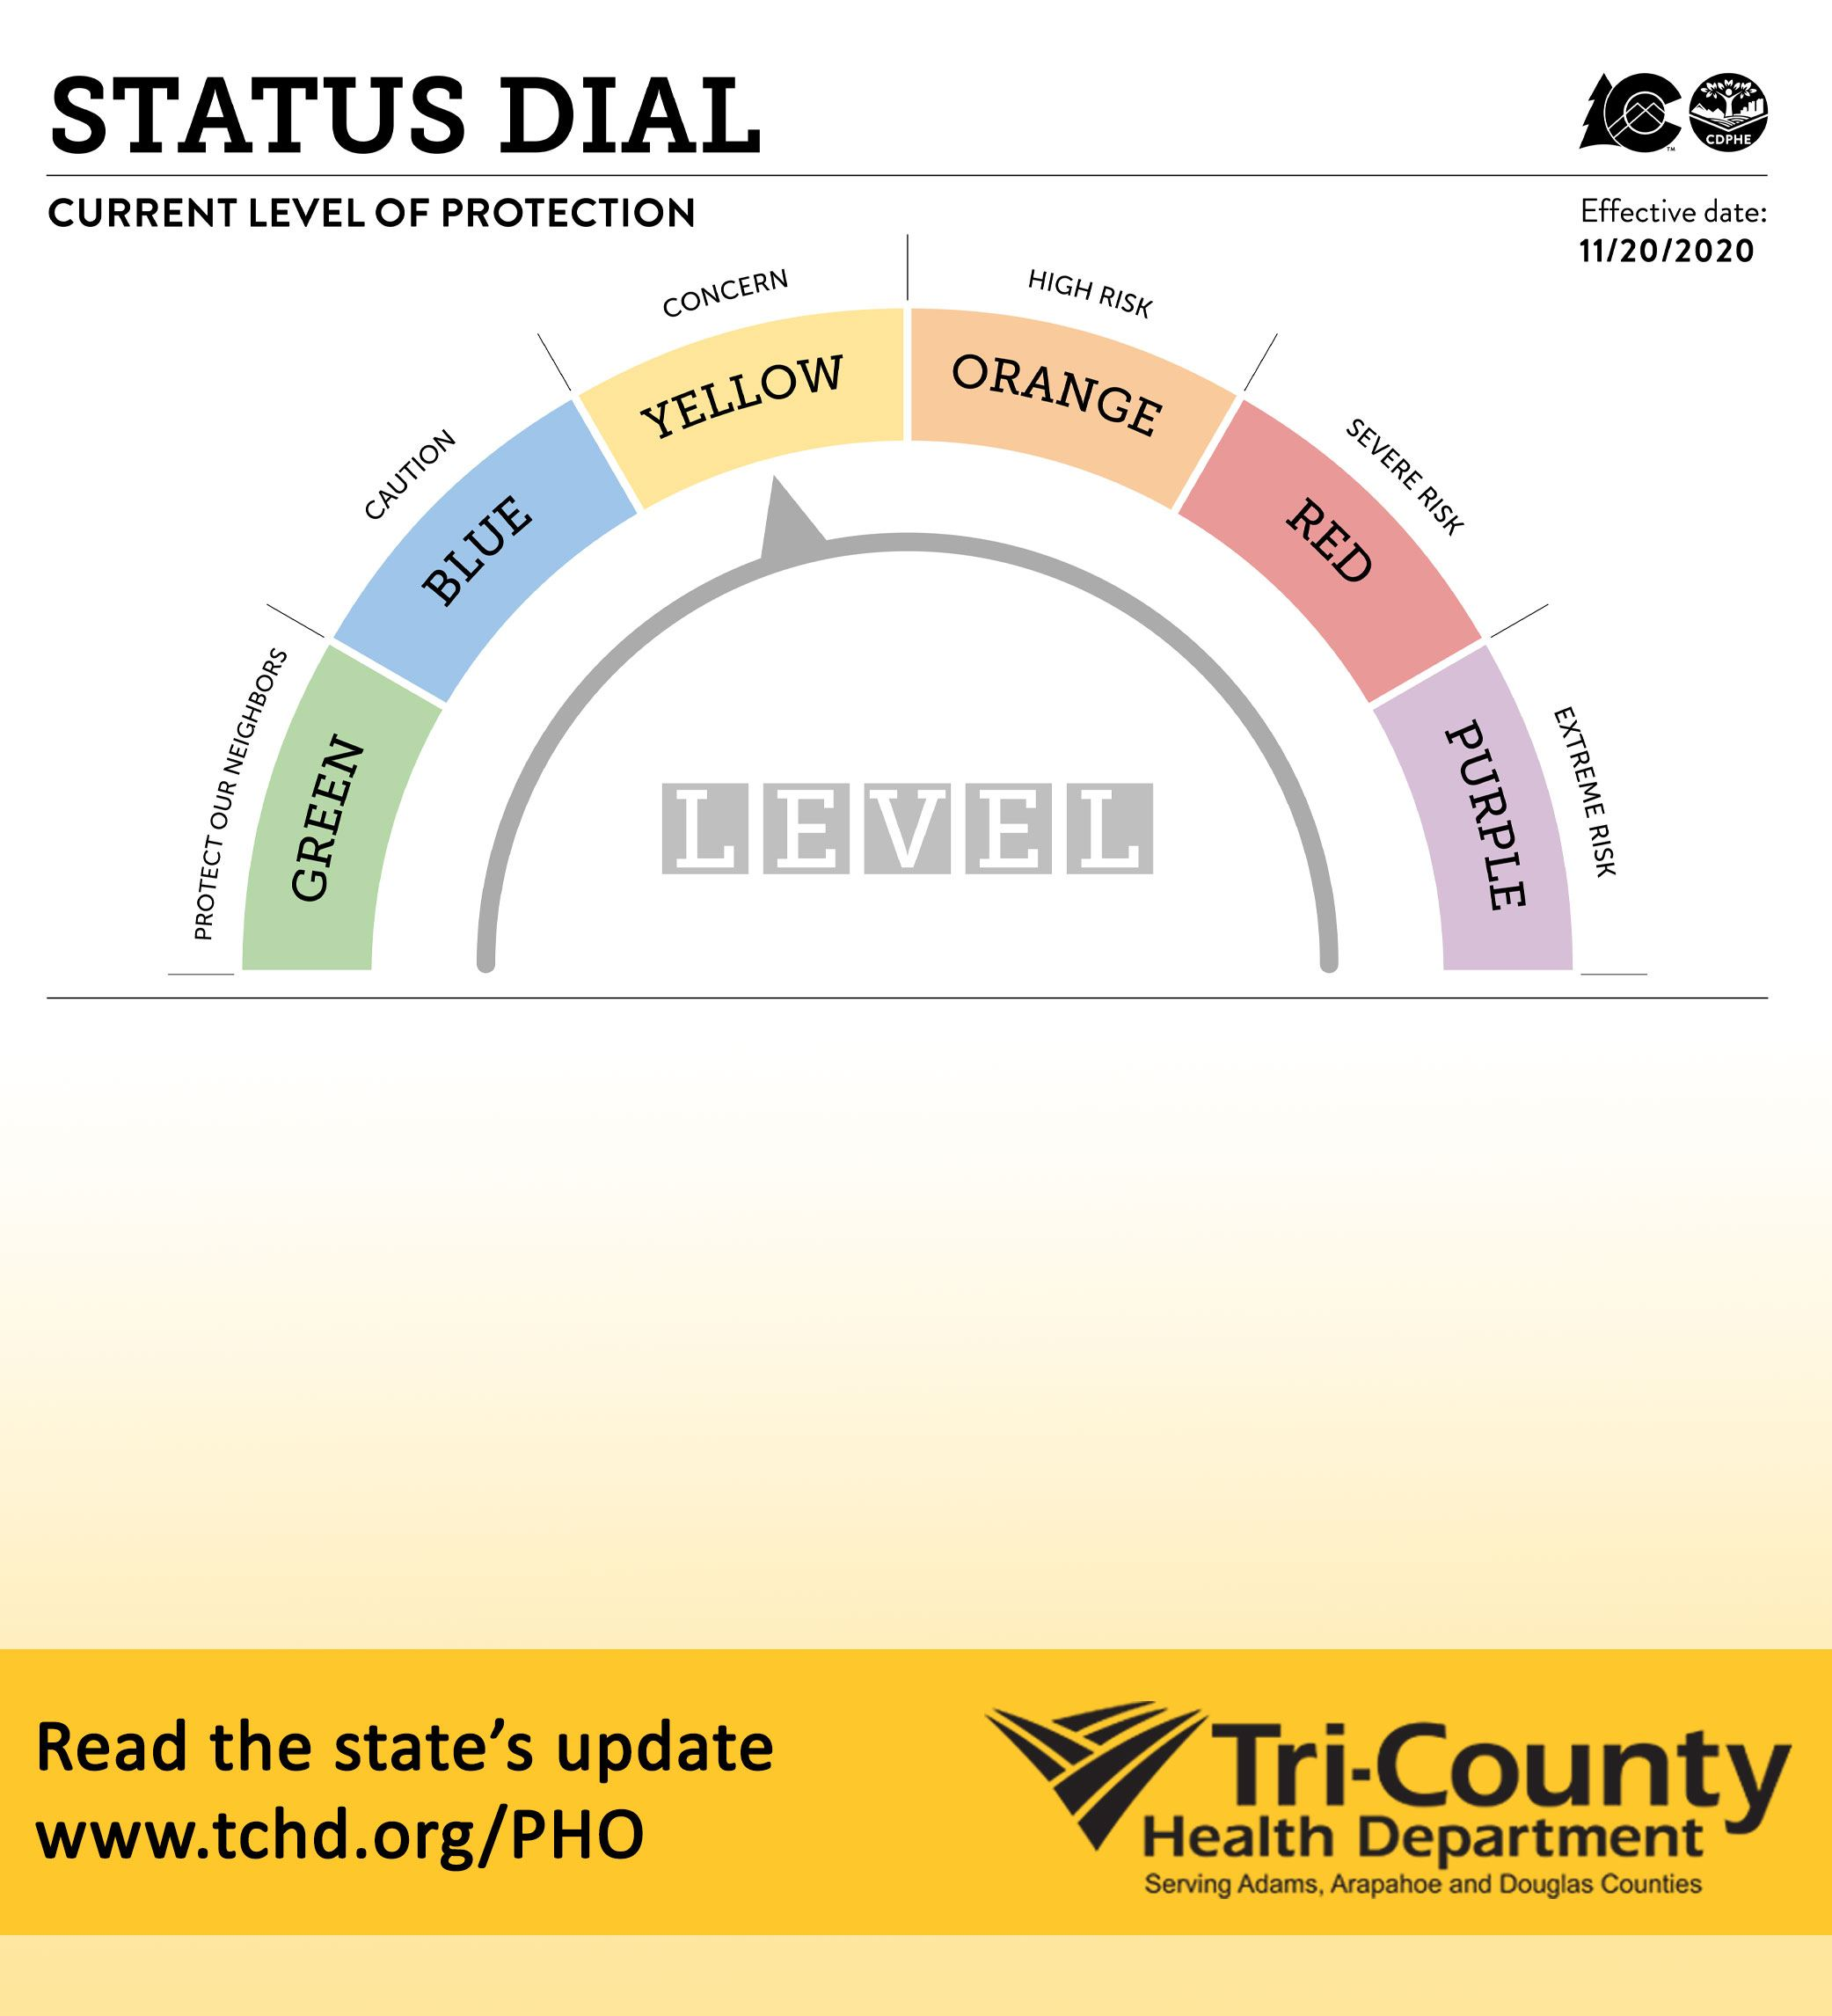 Level Yellow for counites on the state's COVID-19 Dial